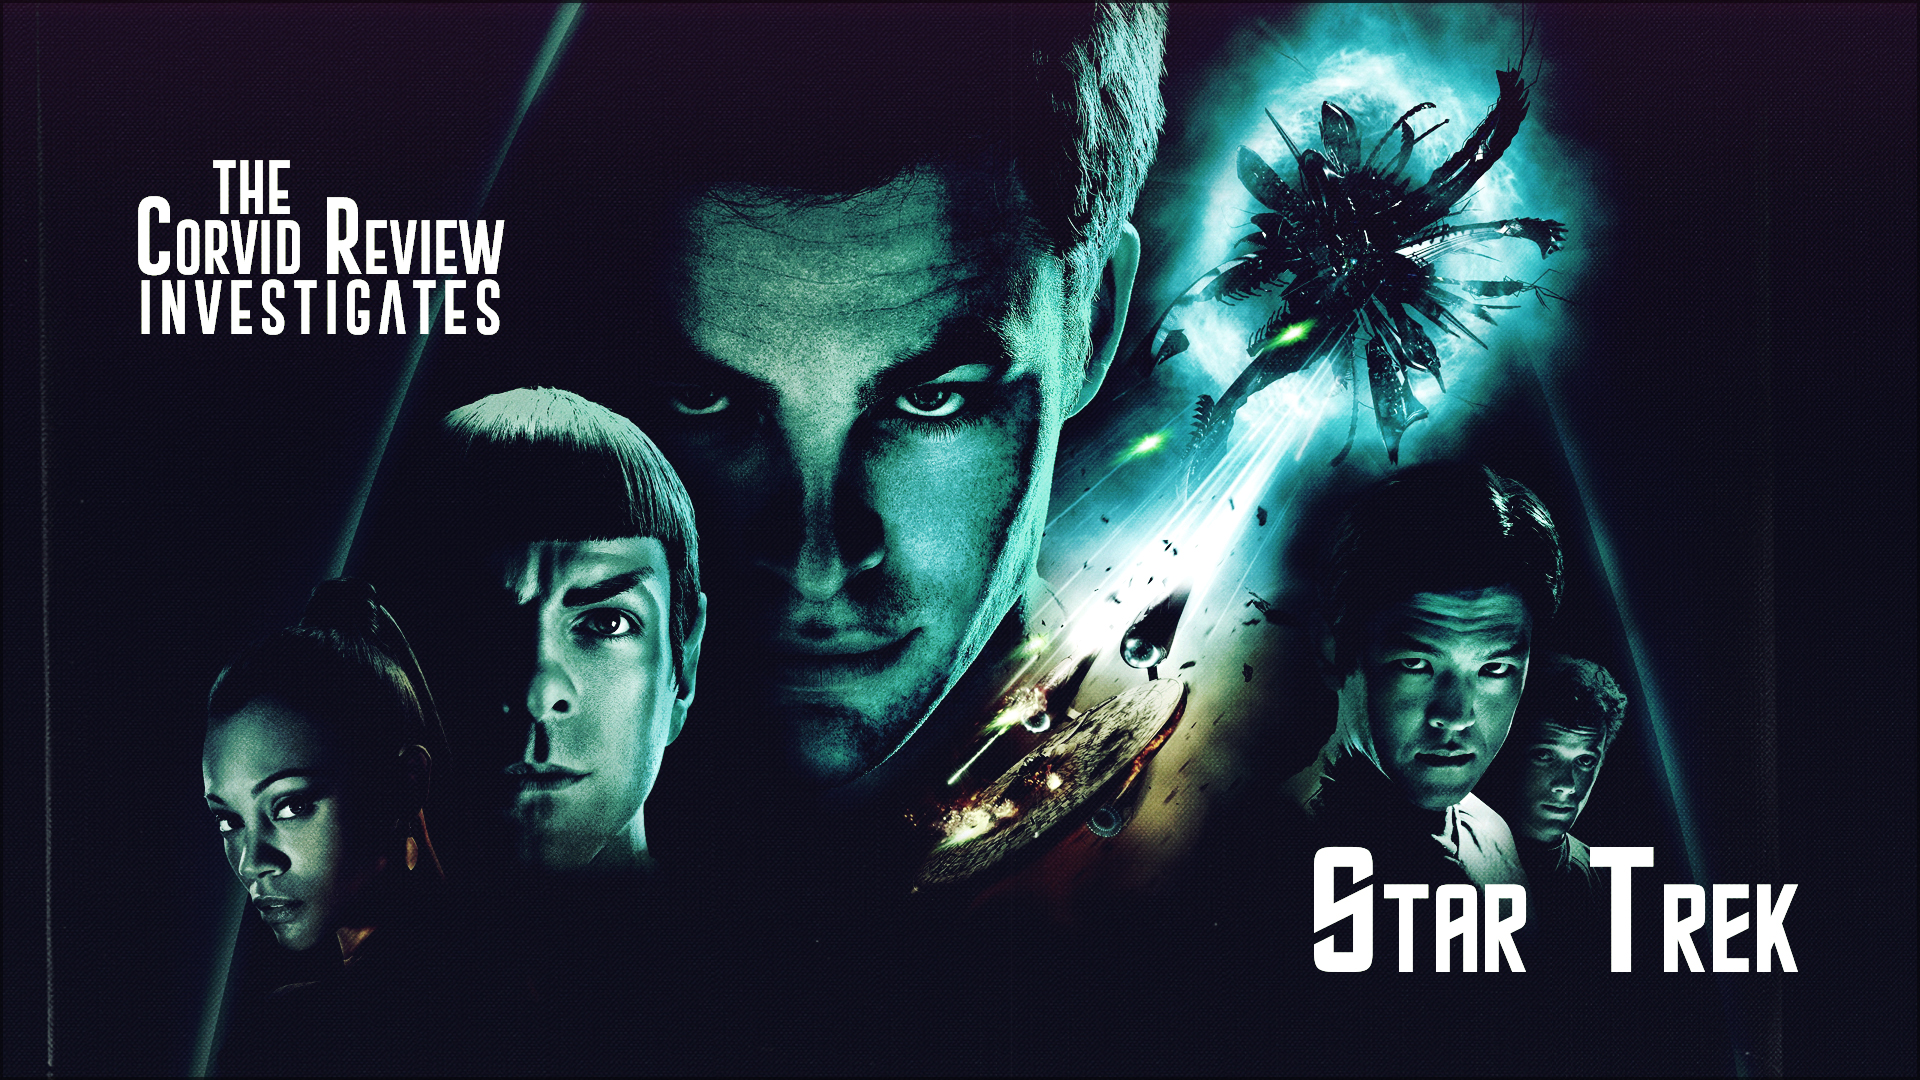 The Corvid Review - Star Trek Month Star Trek 2009 - LdV1uVH